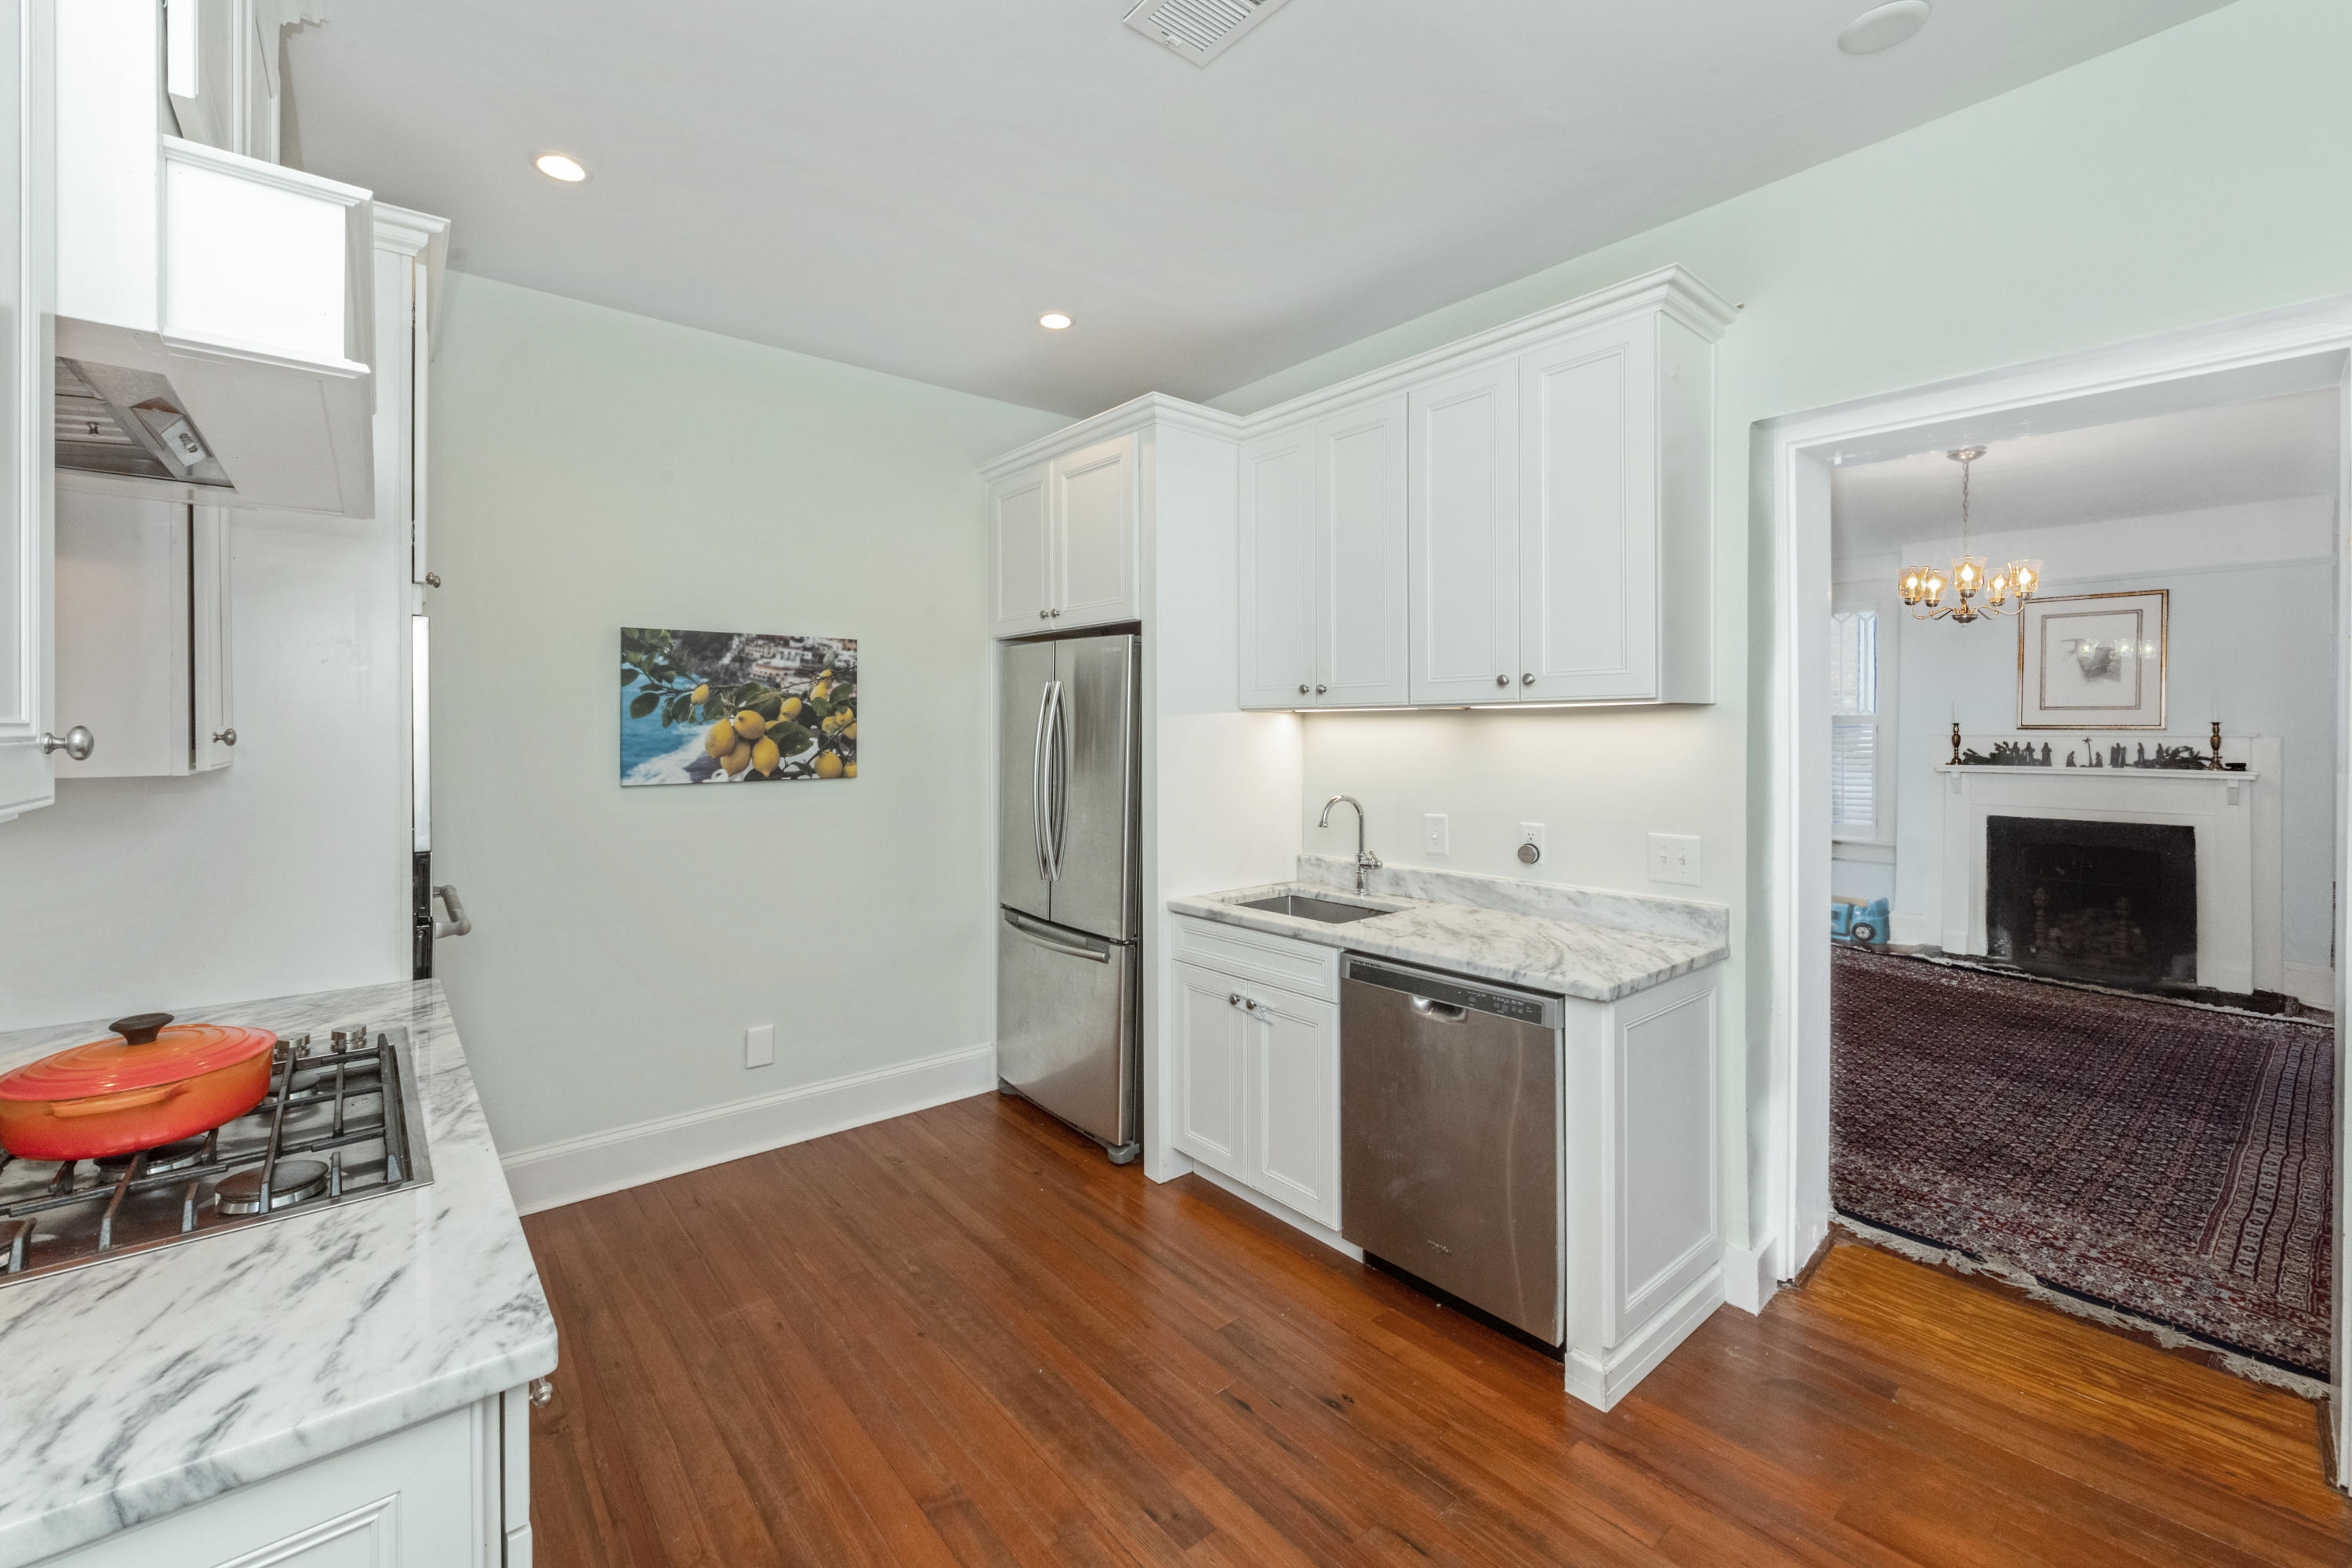 South of Broad Homes For Sale - 4 Weims, Charleston, SC - 18